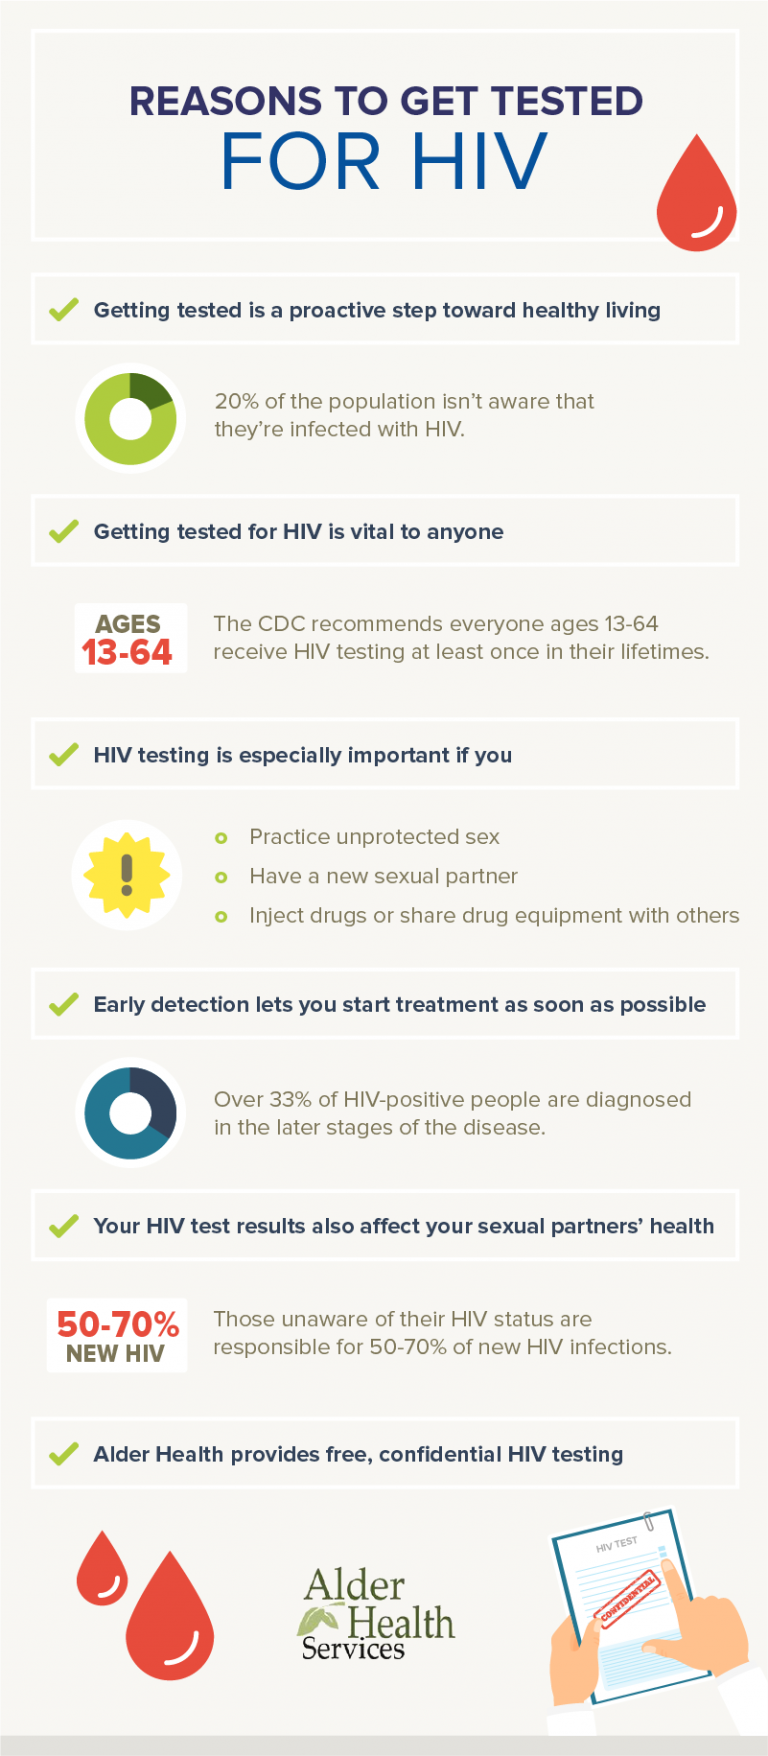 Reasons Why You Should Get Tested for HIV